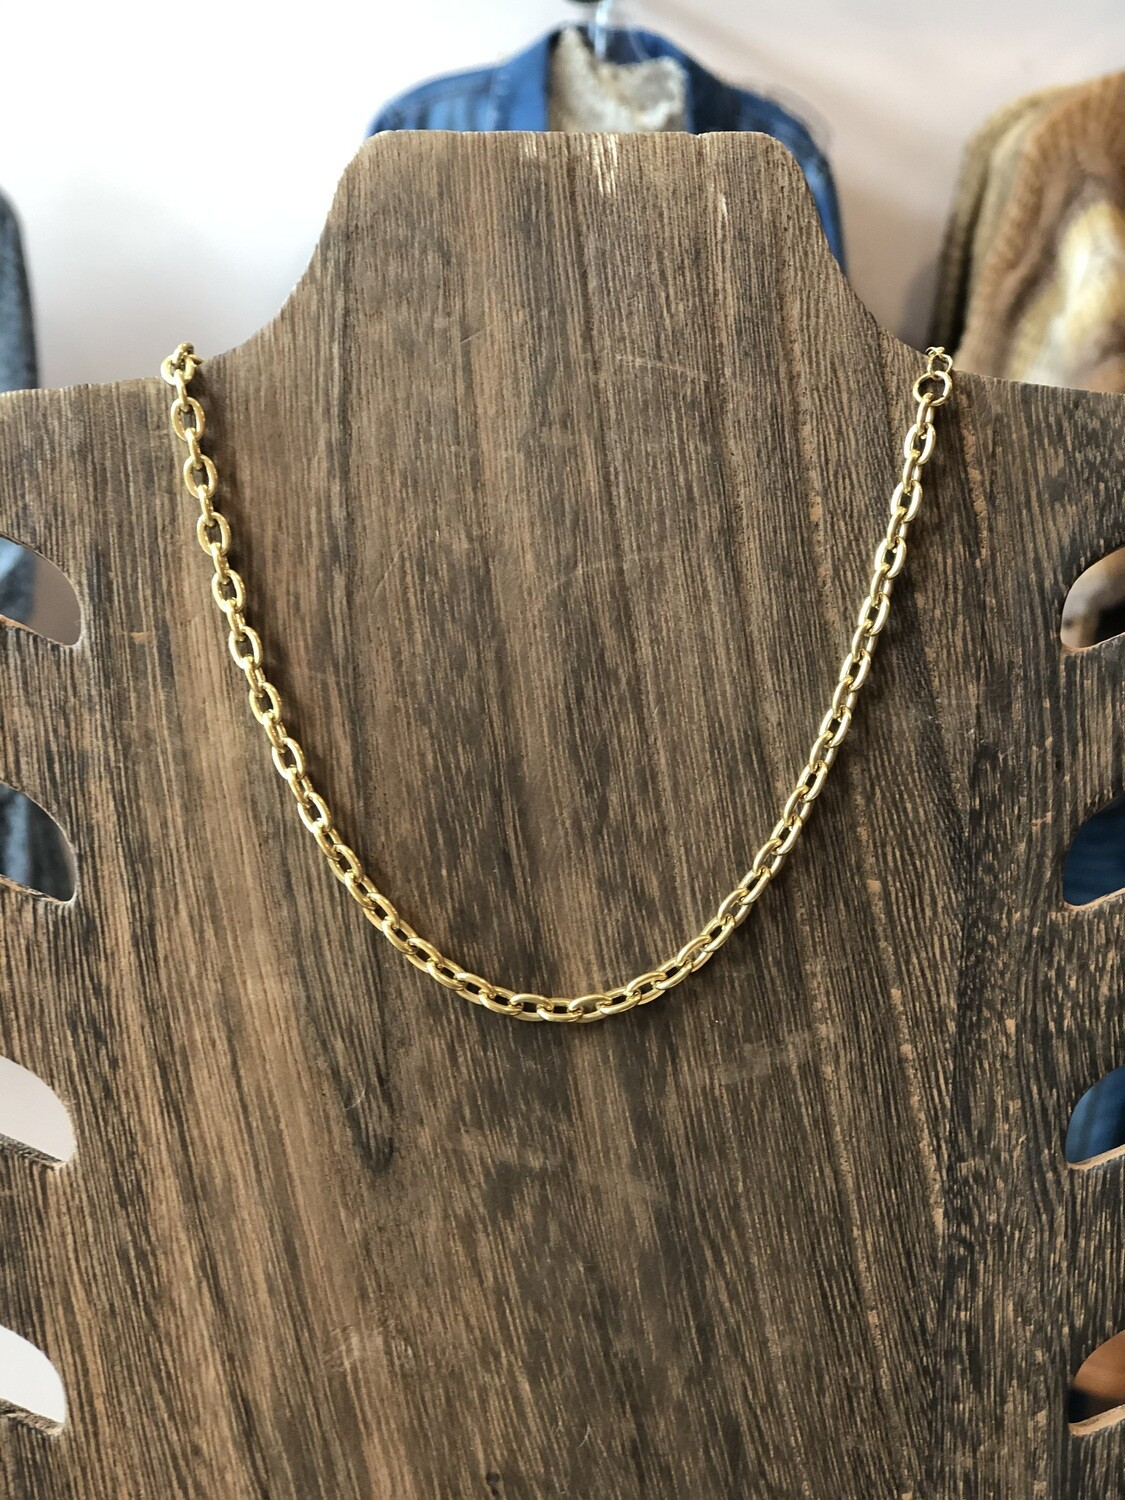 14k gold chain link